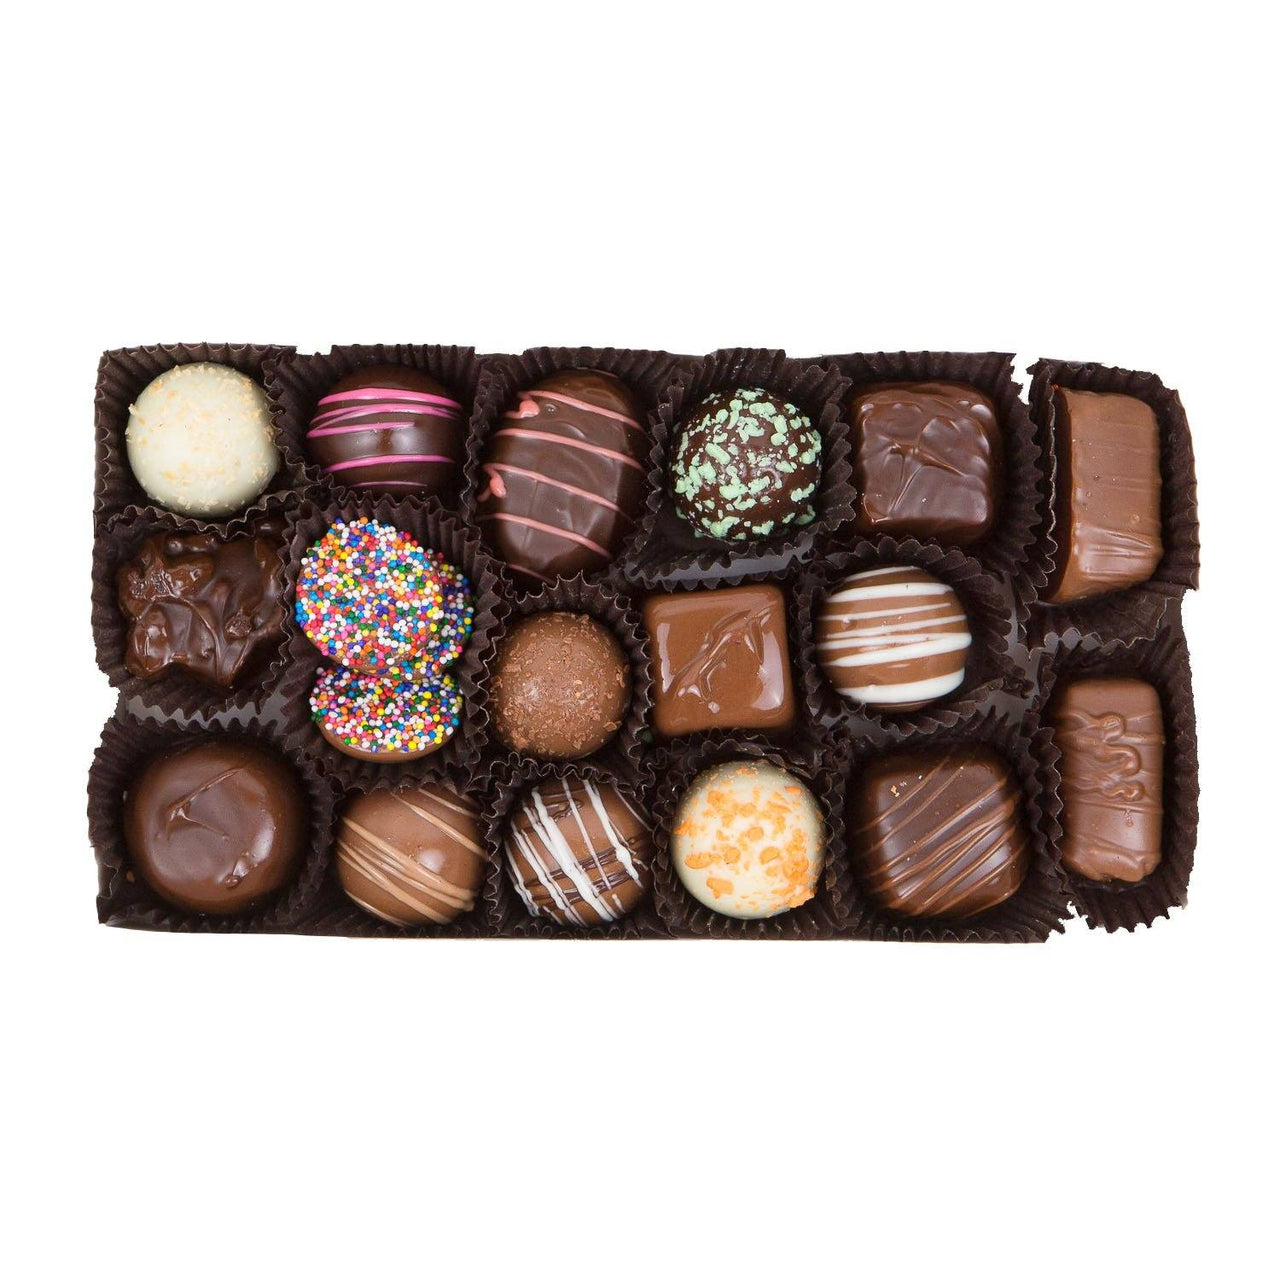 Unique Food Gifts - Assorted Chocolate Gift Box - Jackie's Chocolate